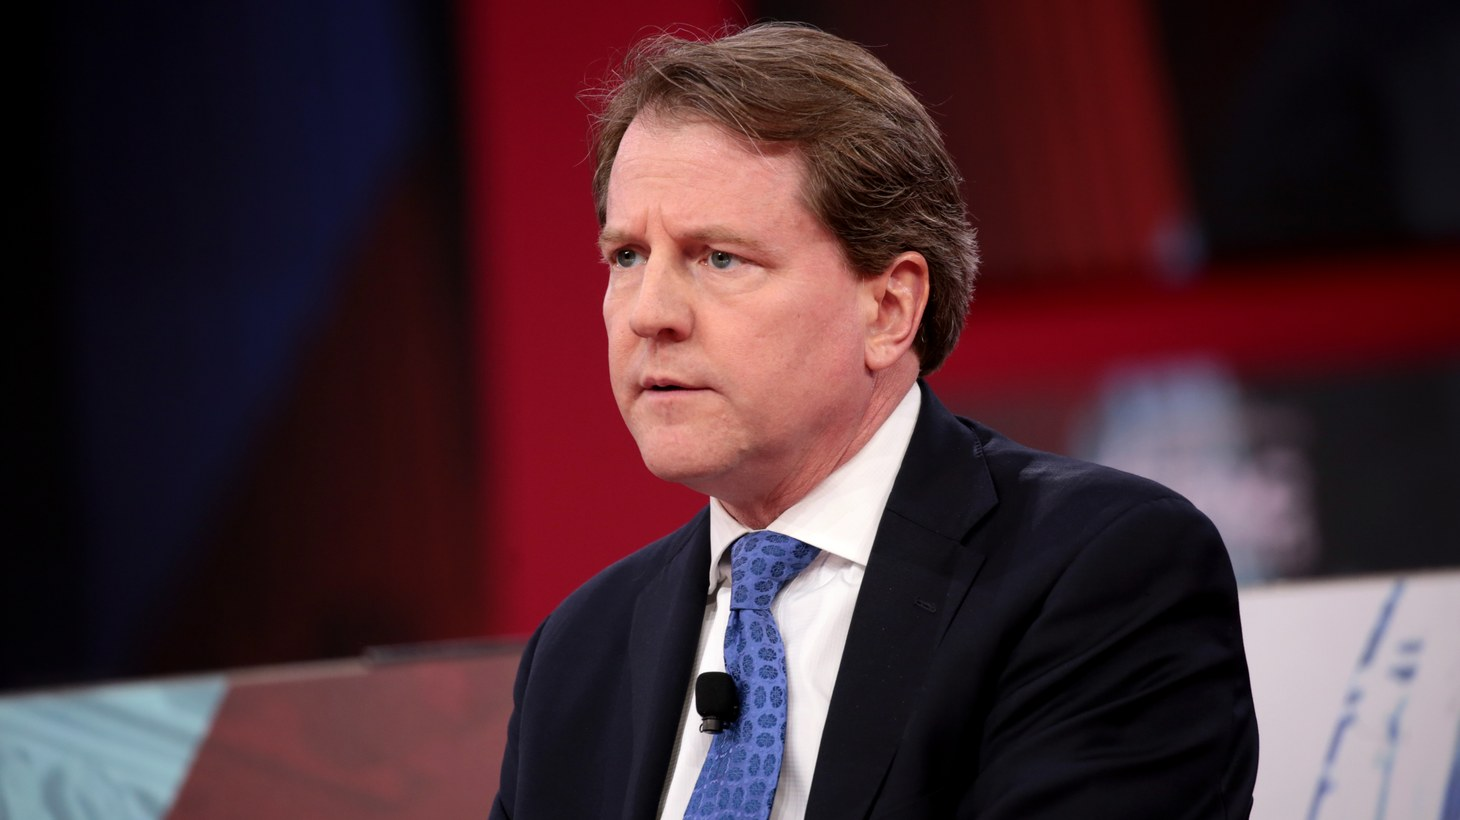 Don McGahn speaking at the 2018 Conservative Political Action Conference (CPAC) in National Harbor, Maryland.